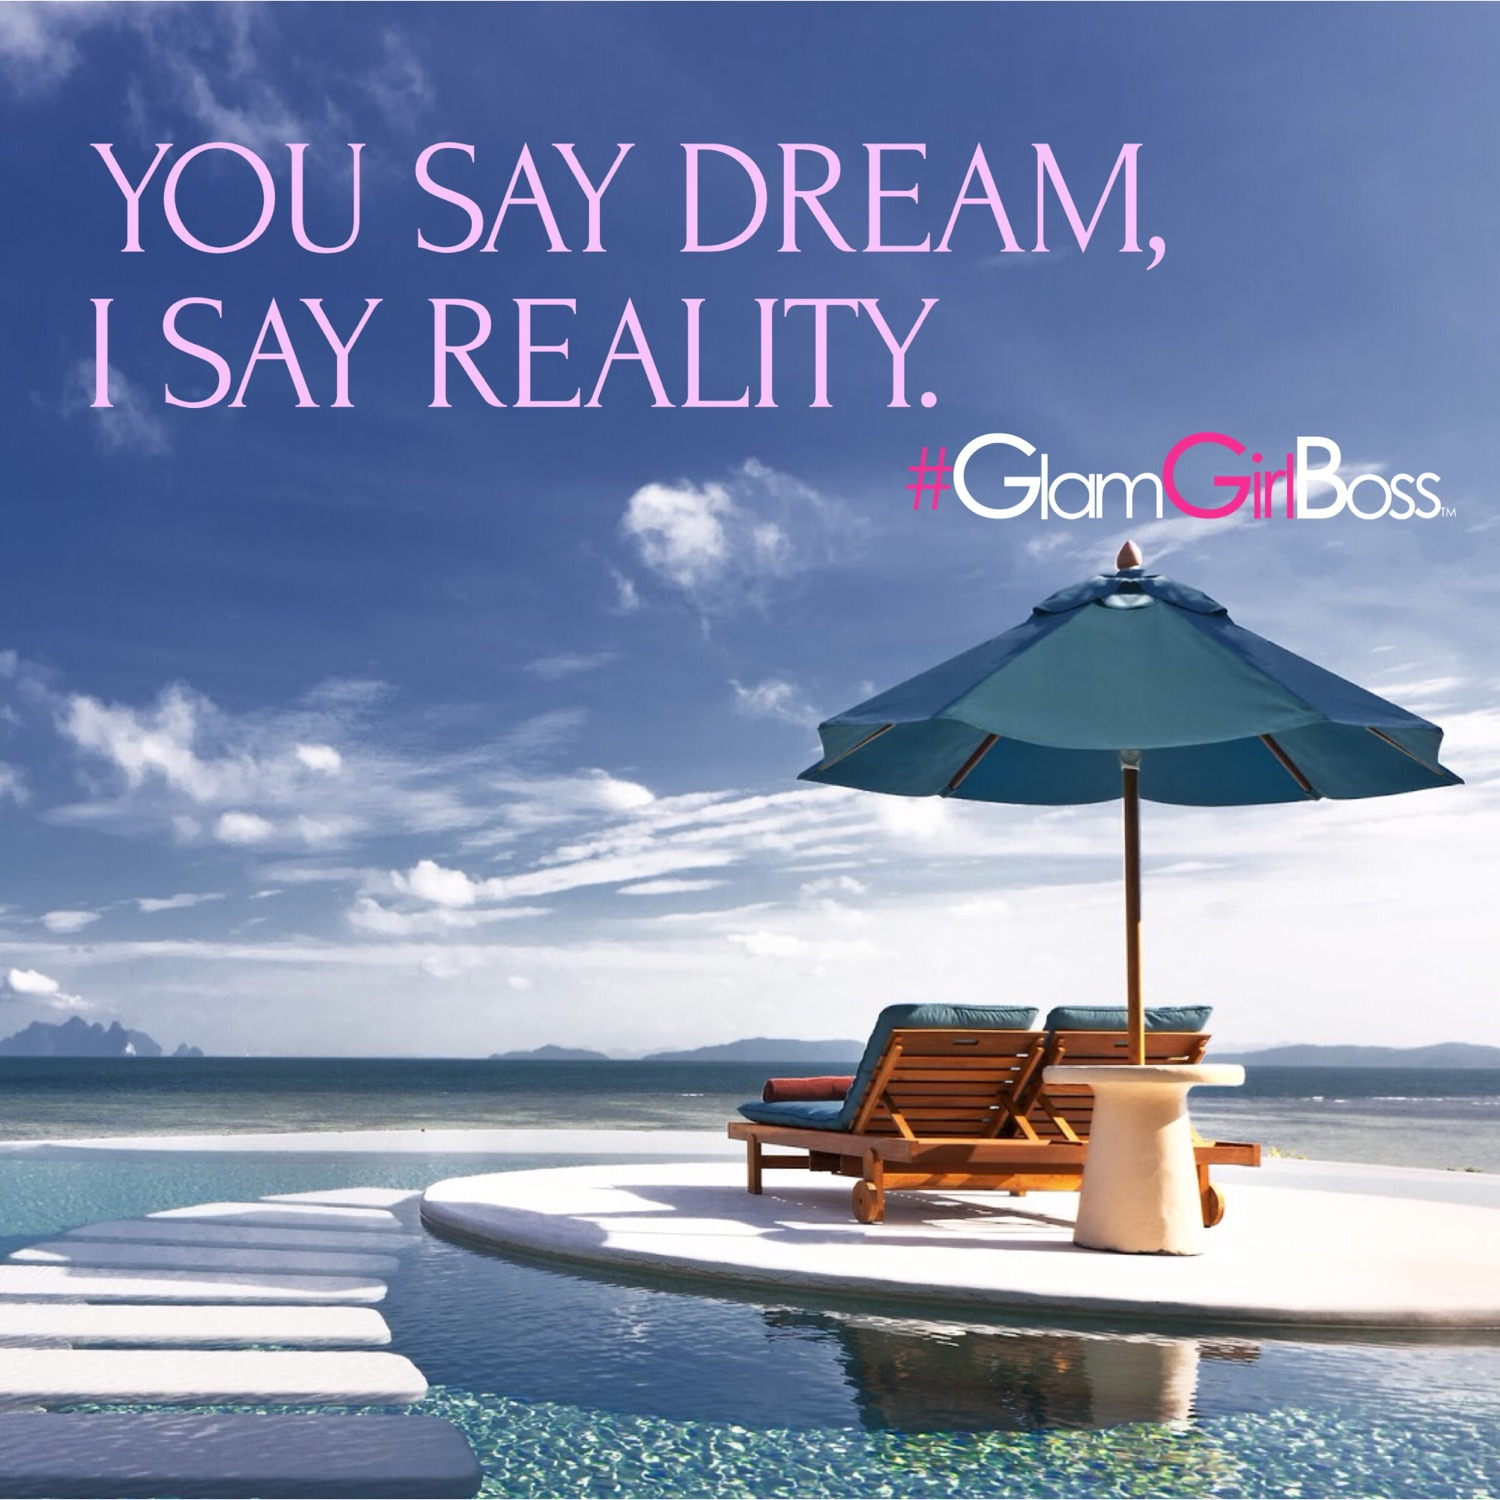 Make your dreams a reality.